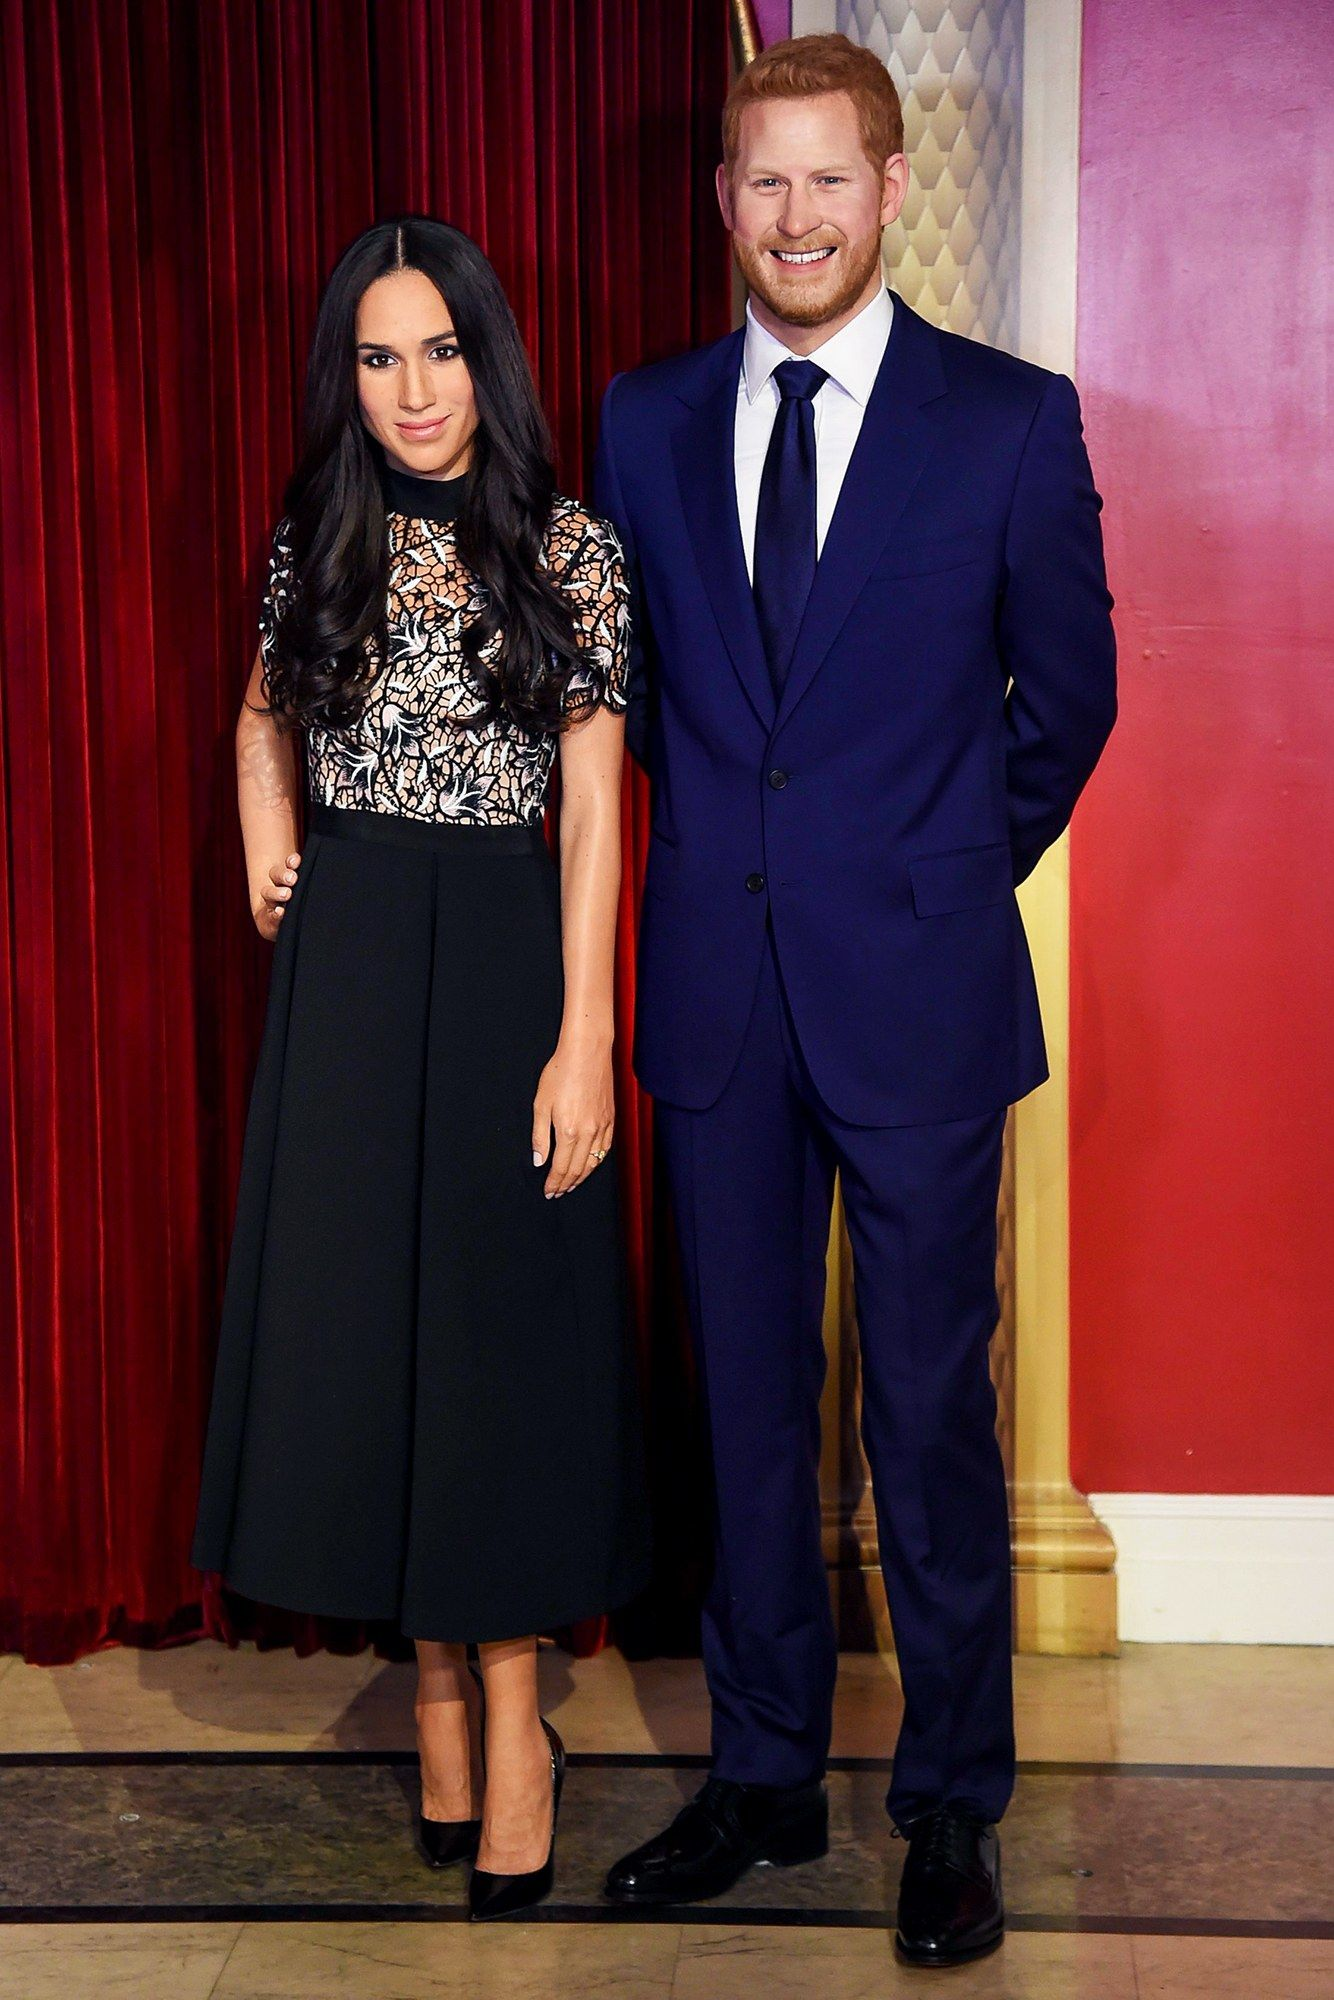 Royal blue lace wedding dress october 2018 Walking Through the Uncanny Valley of Madame Tussaudsus Meghan